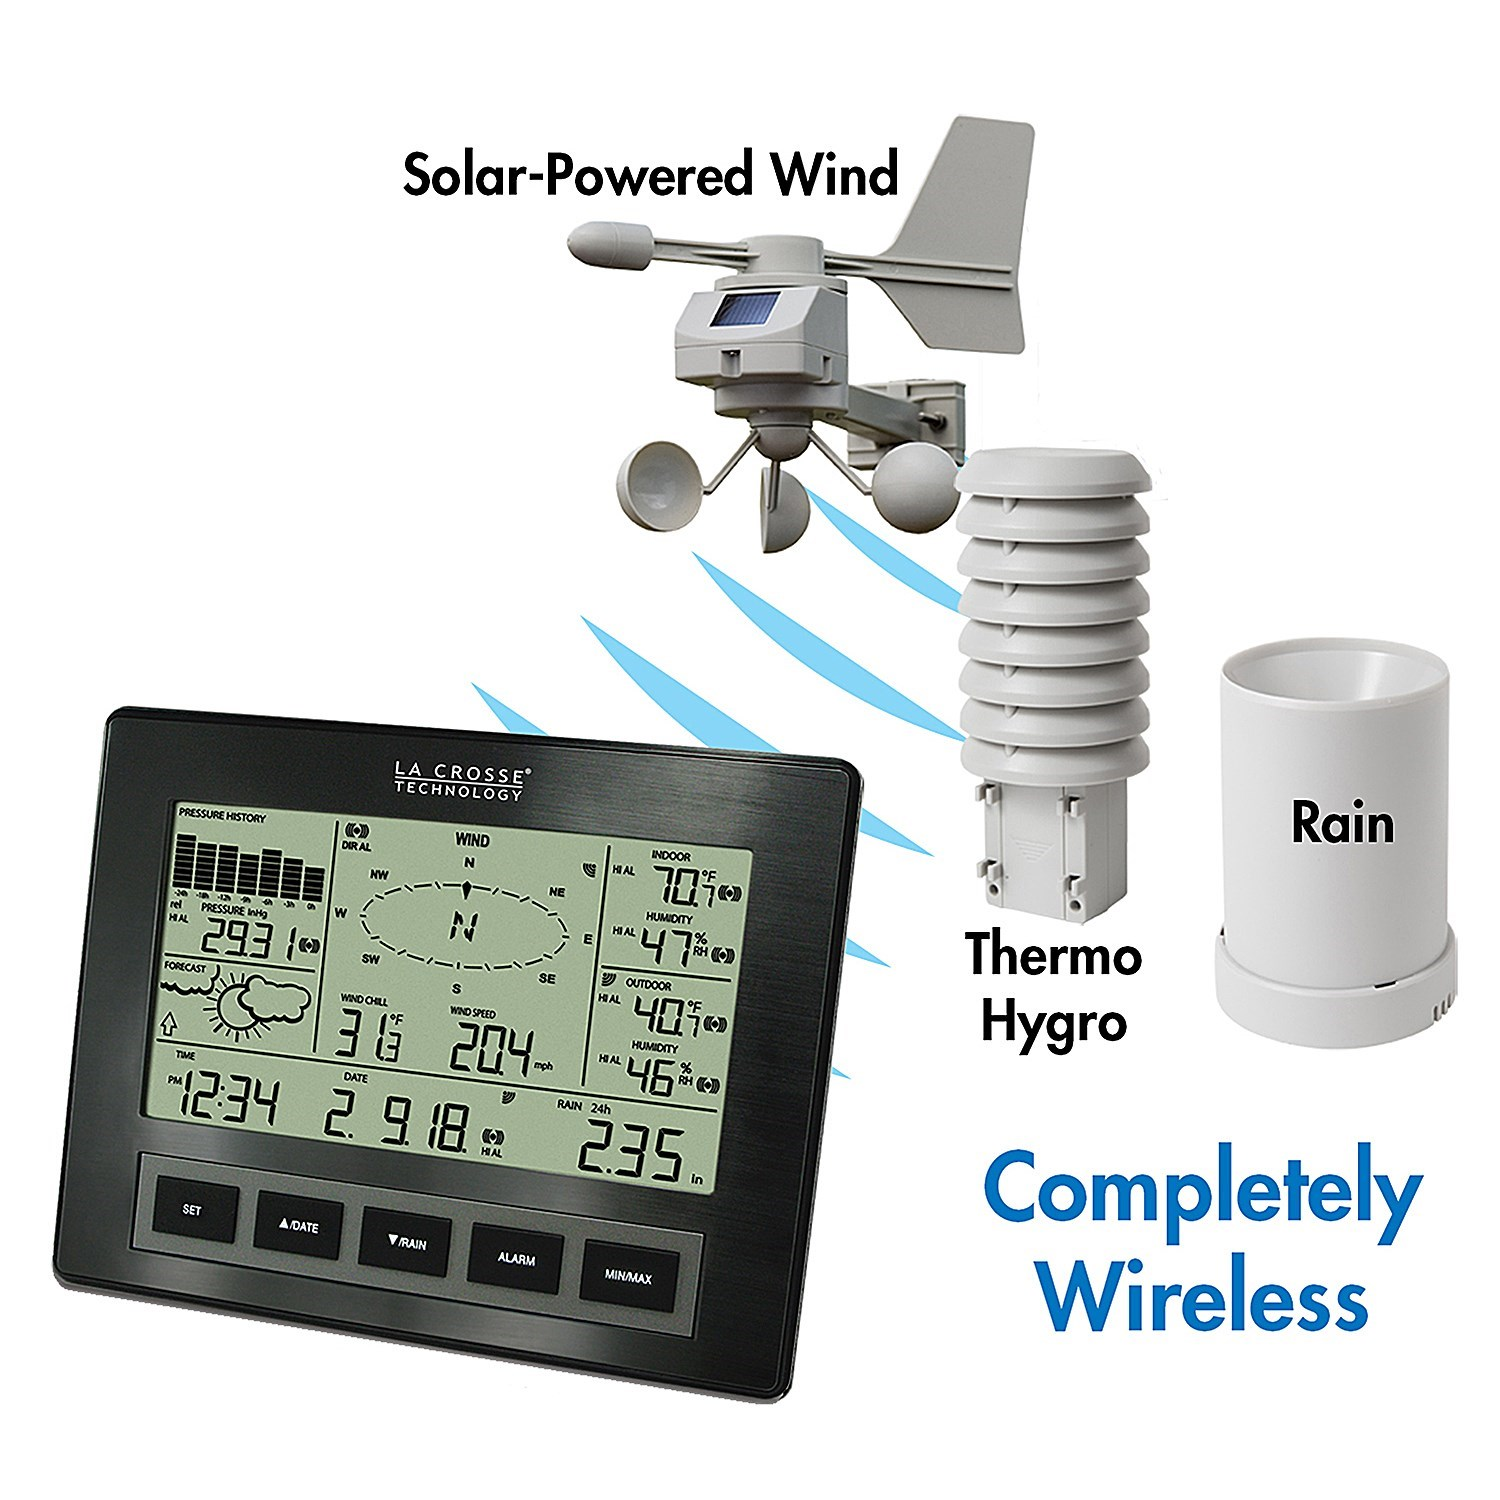 la crosse technology professional wireless weather station with alerts save 64. Black Bedroom Furniture Sets. Home Design Ideas